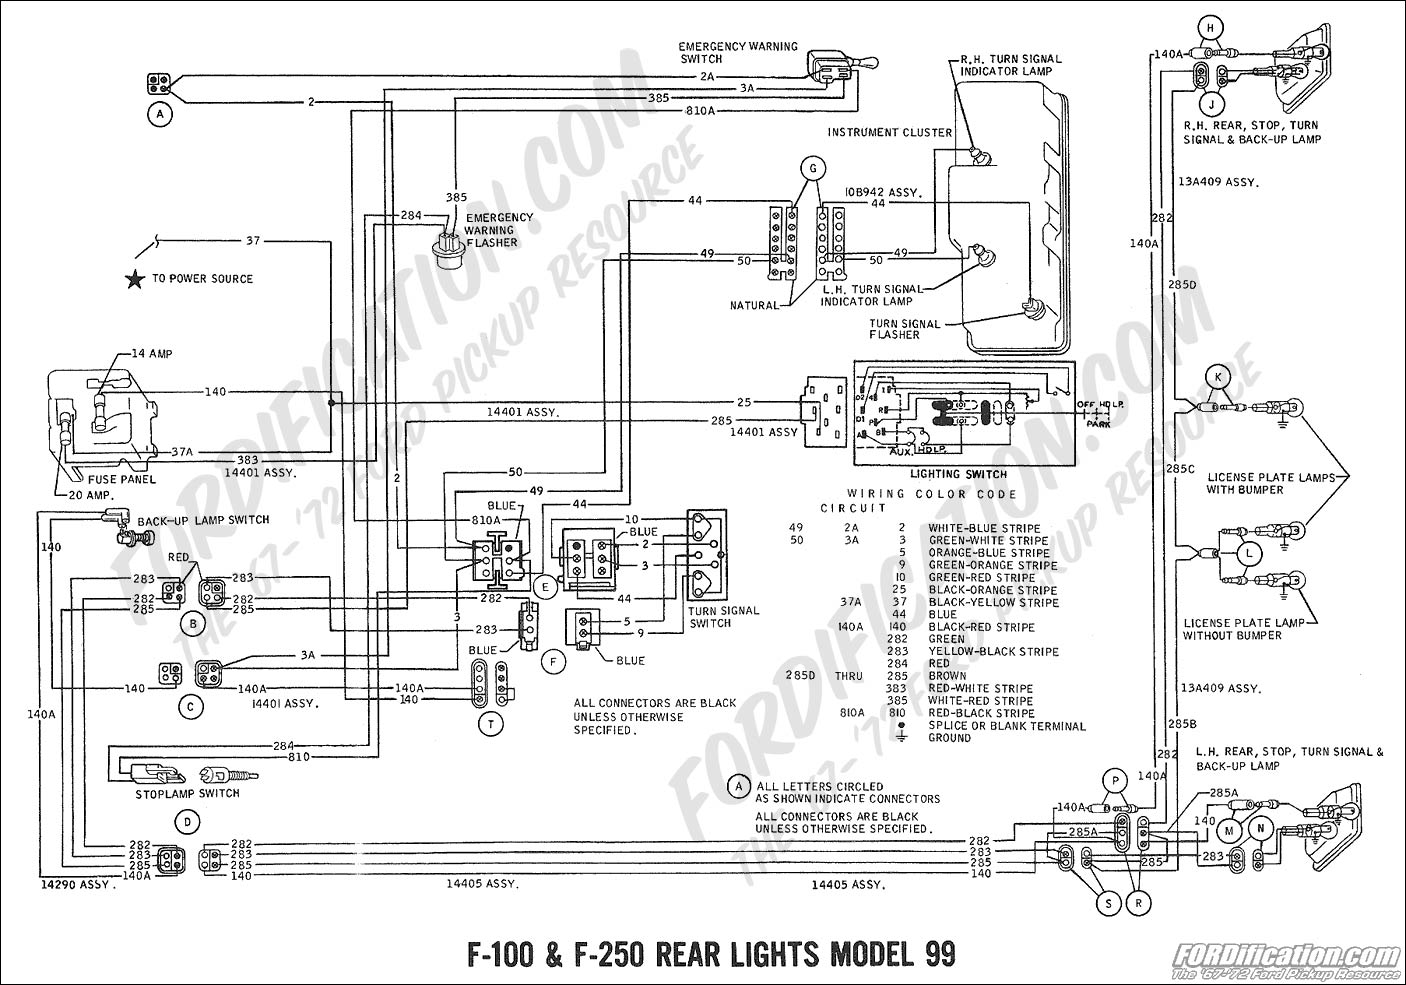 car Light circuit : Automotive Circuits :: Next.gr